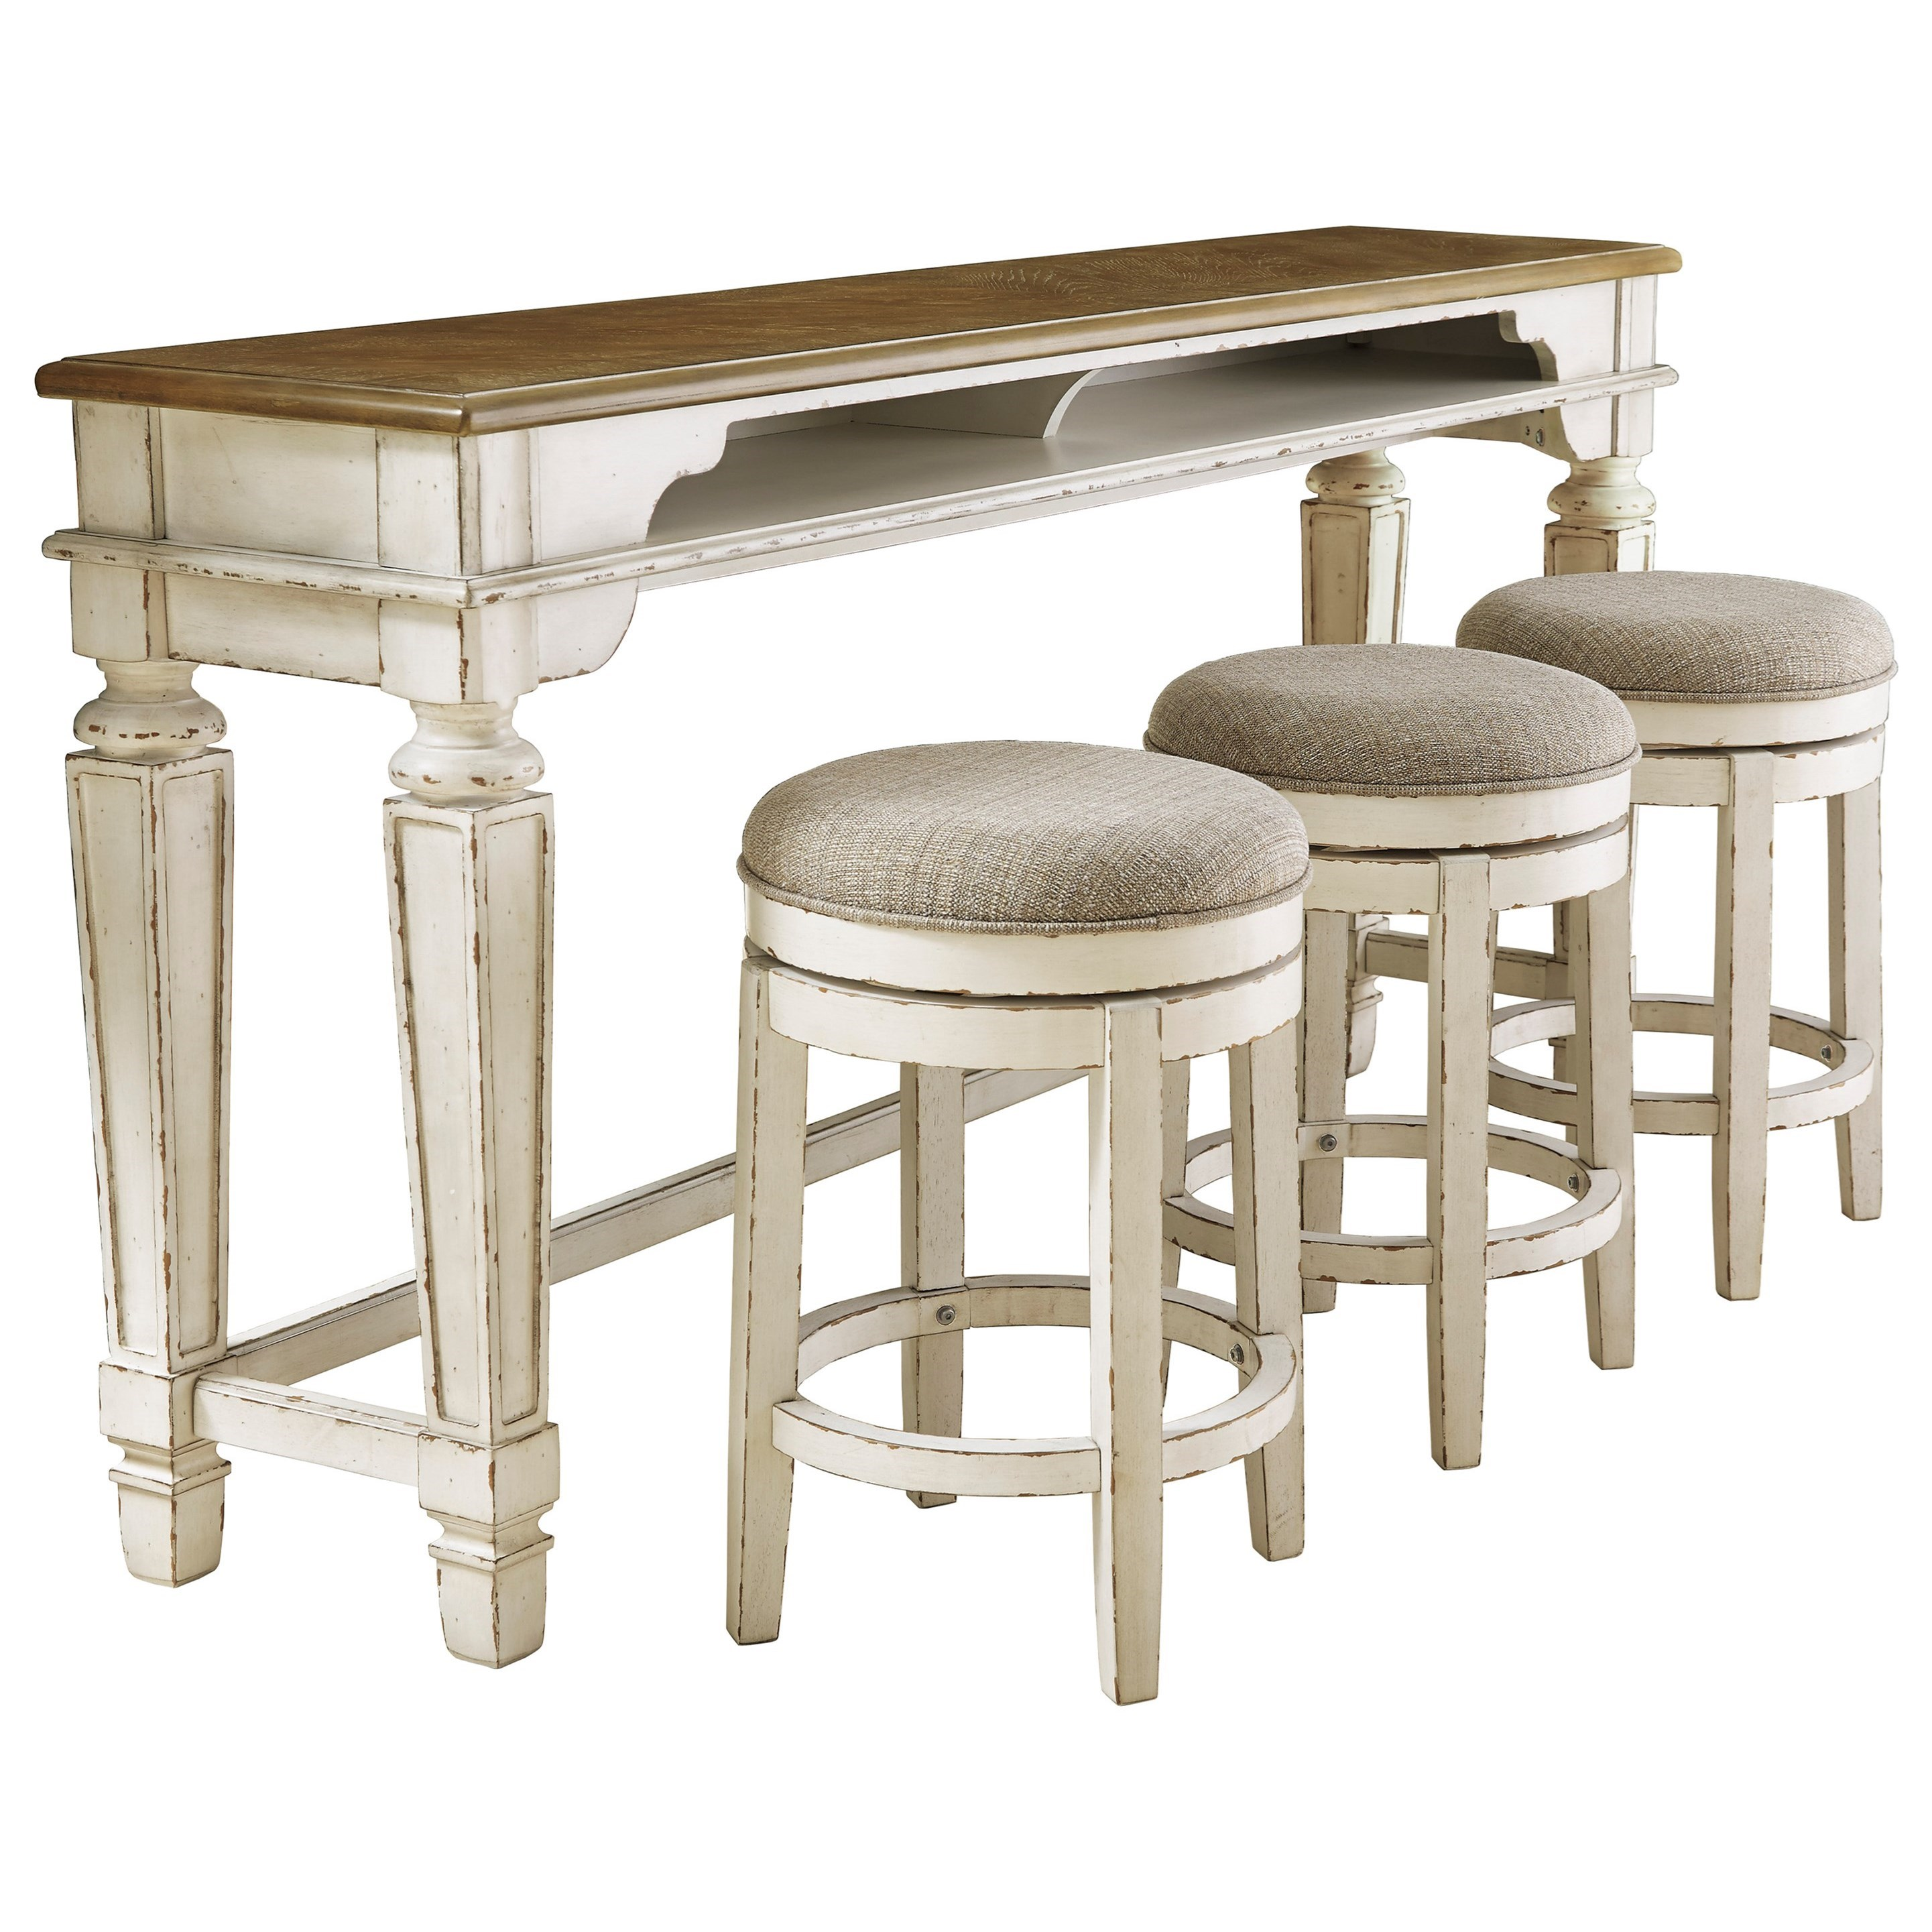 Long Counter Table w/ 3 Stools